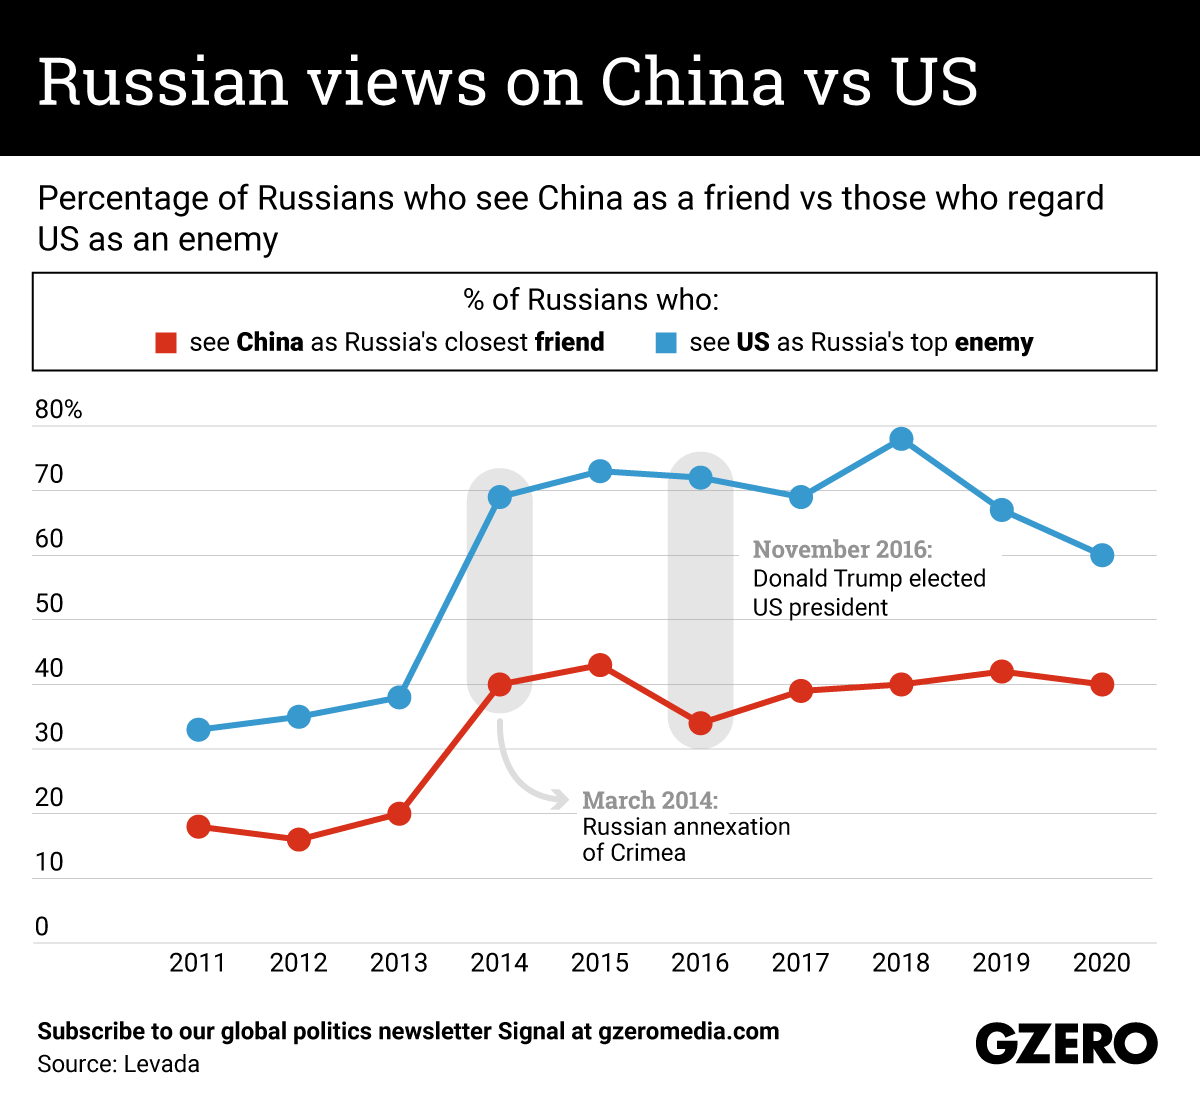 The Graphic Truth: Russian views on China vs US